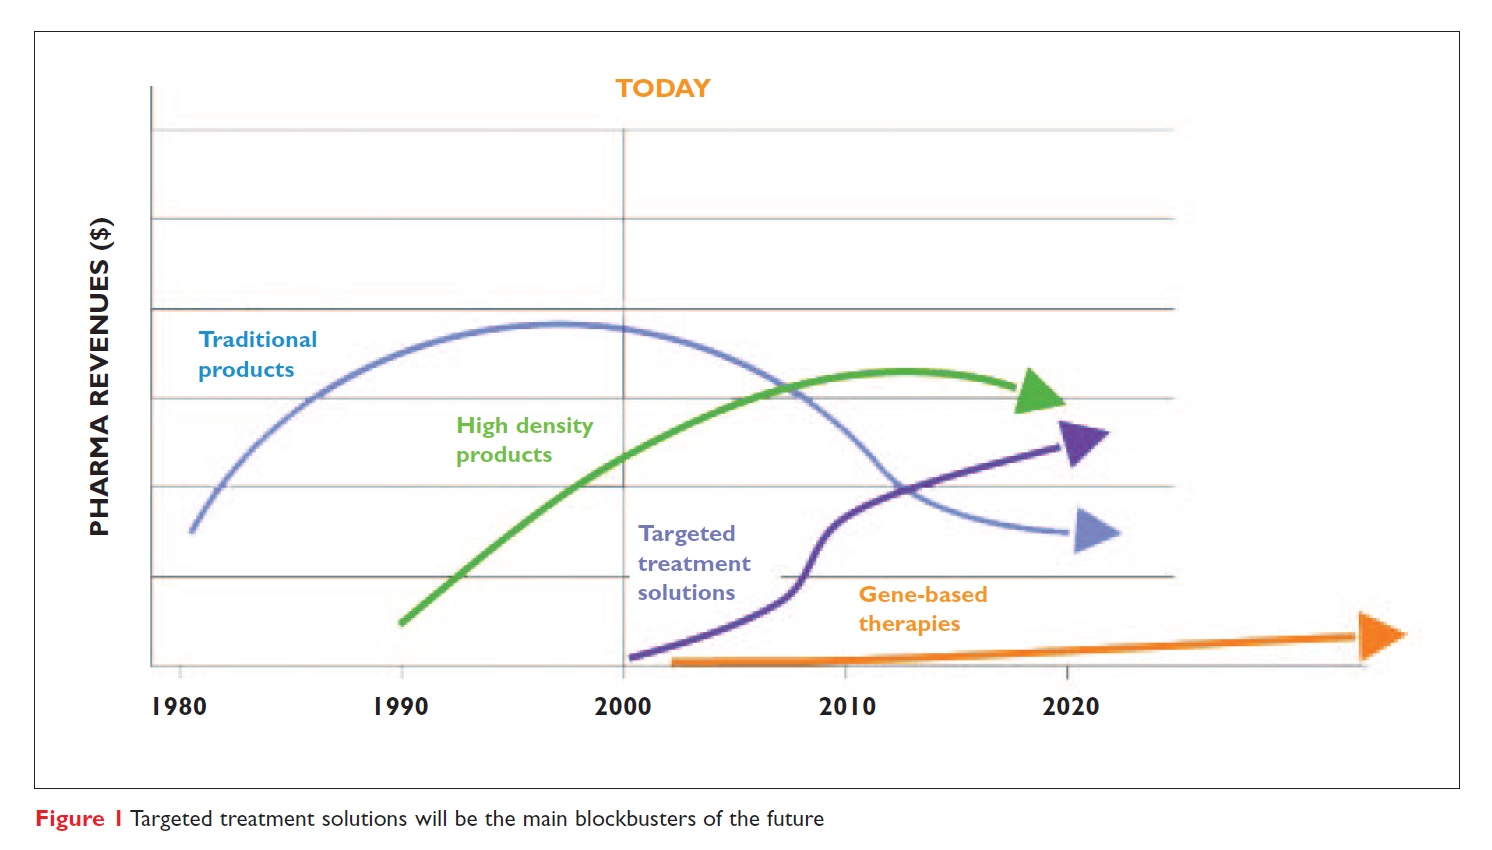 Figure 1 Targeted treatment solutions will be the main blockbusters of the future